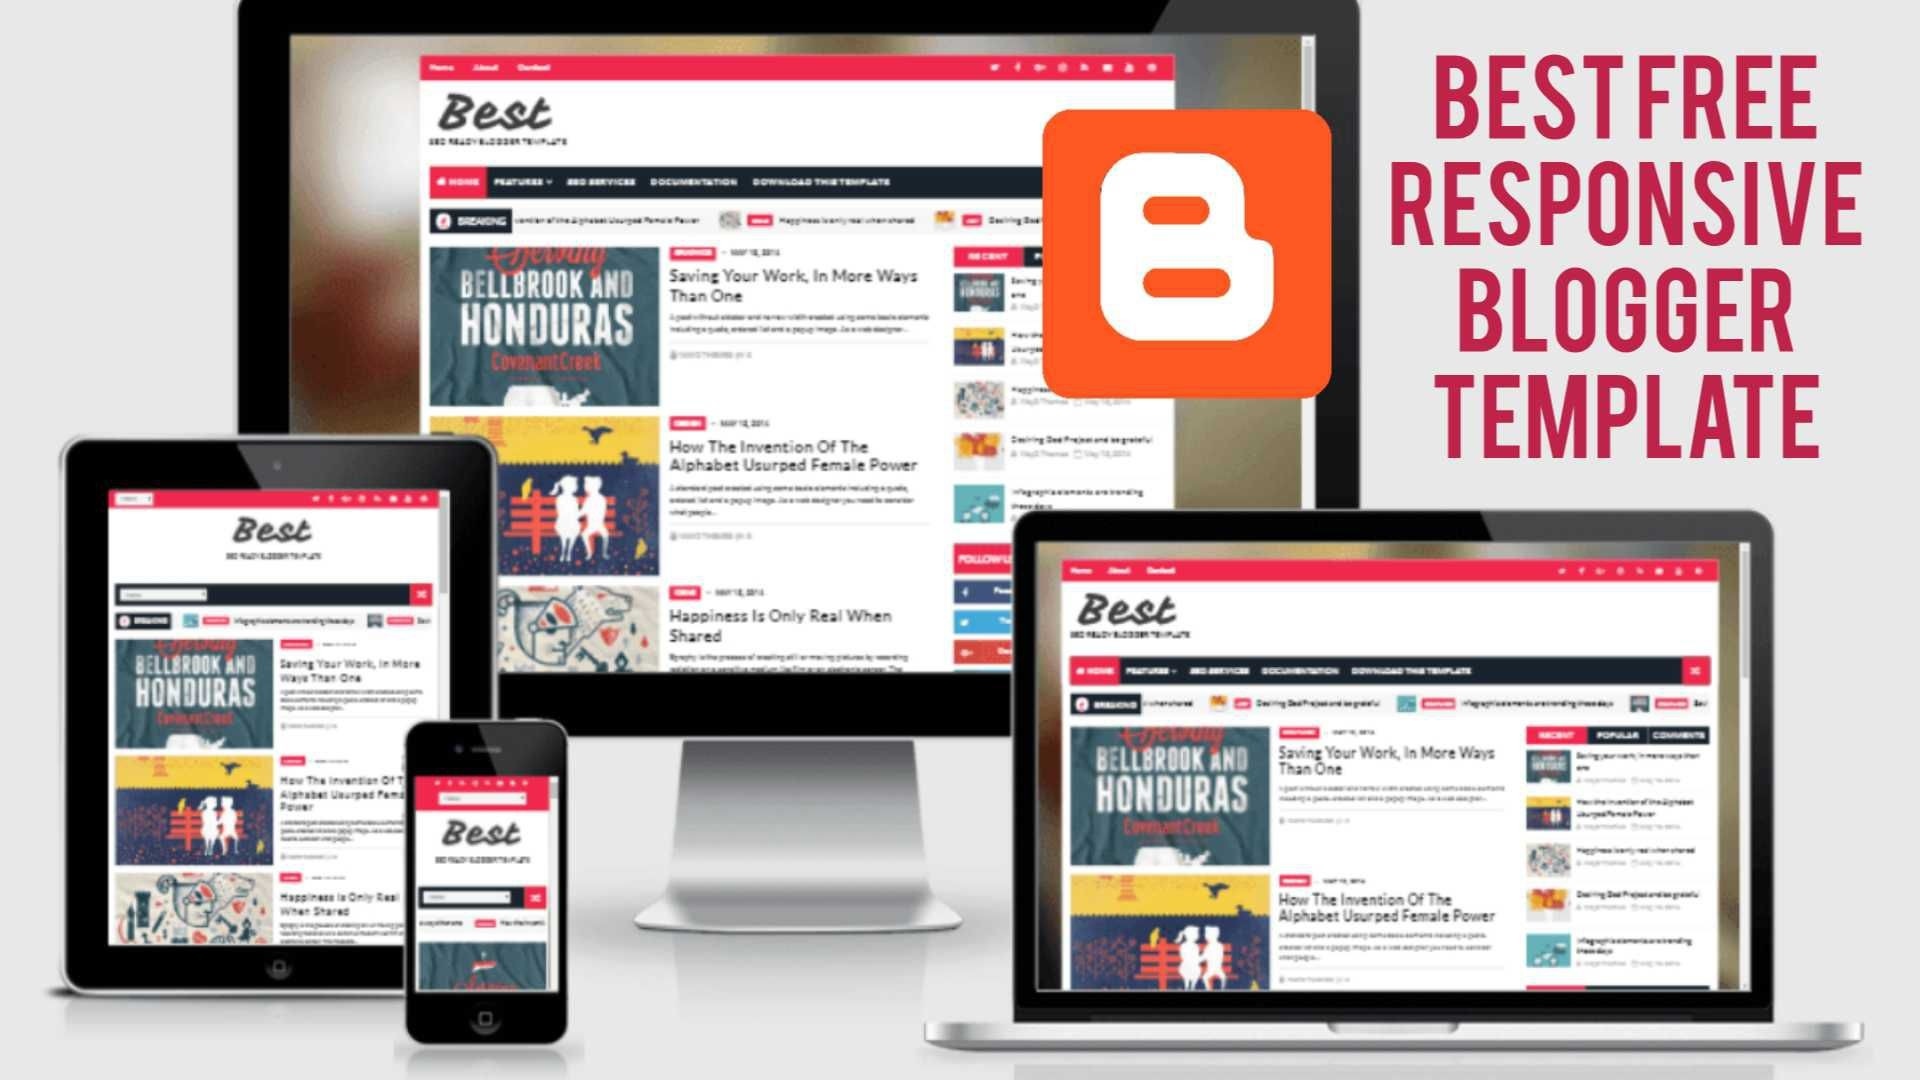 002 Archaicawful Best Free Responsive Blogger Template Inspiration  Templates Mobile Friendly Top 20191920